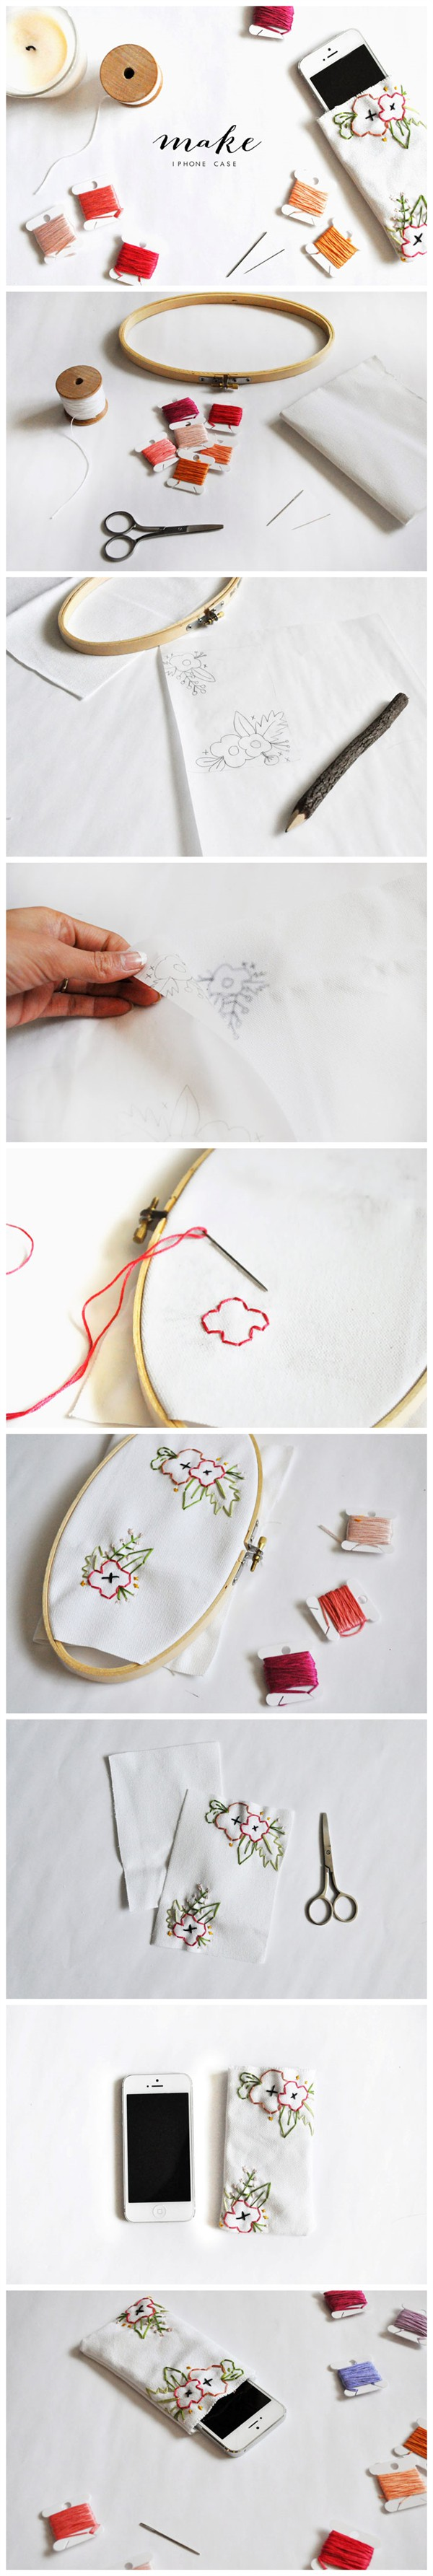 Diy Embroidered Floral Iphone Case